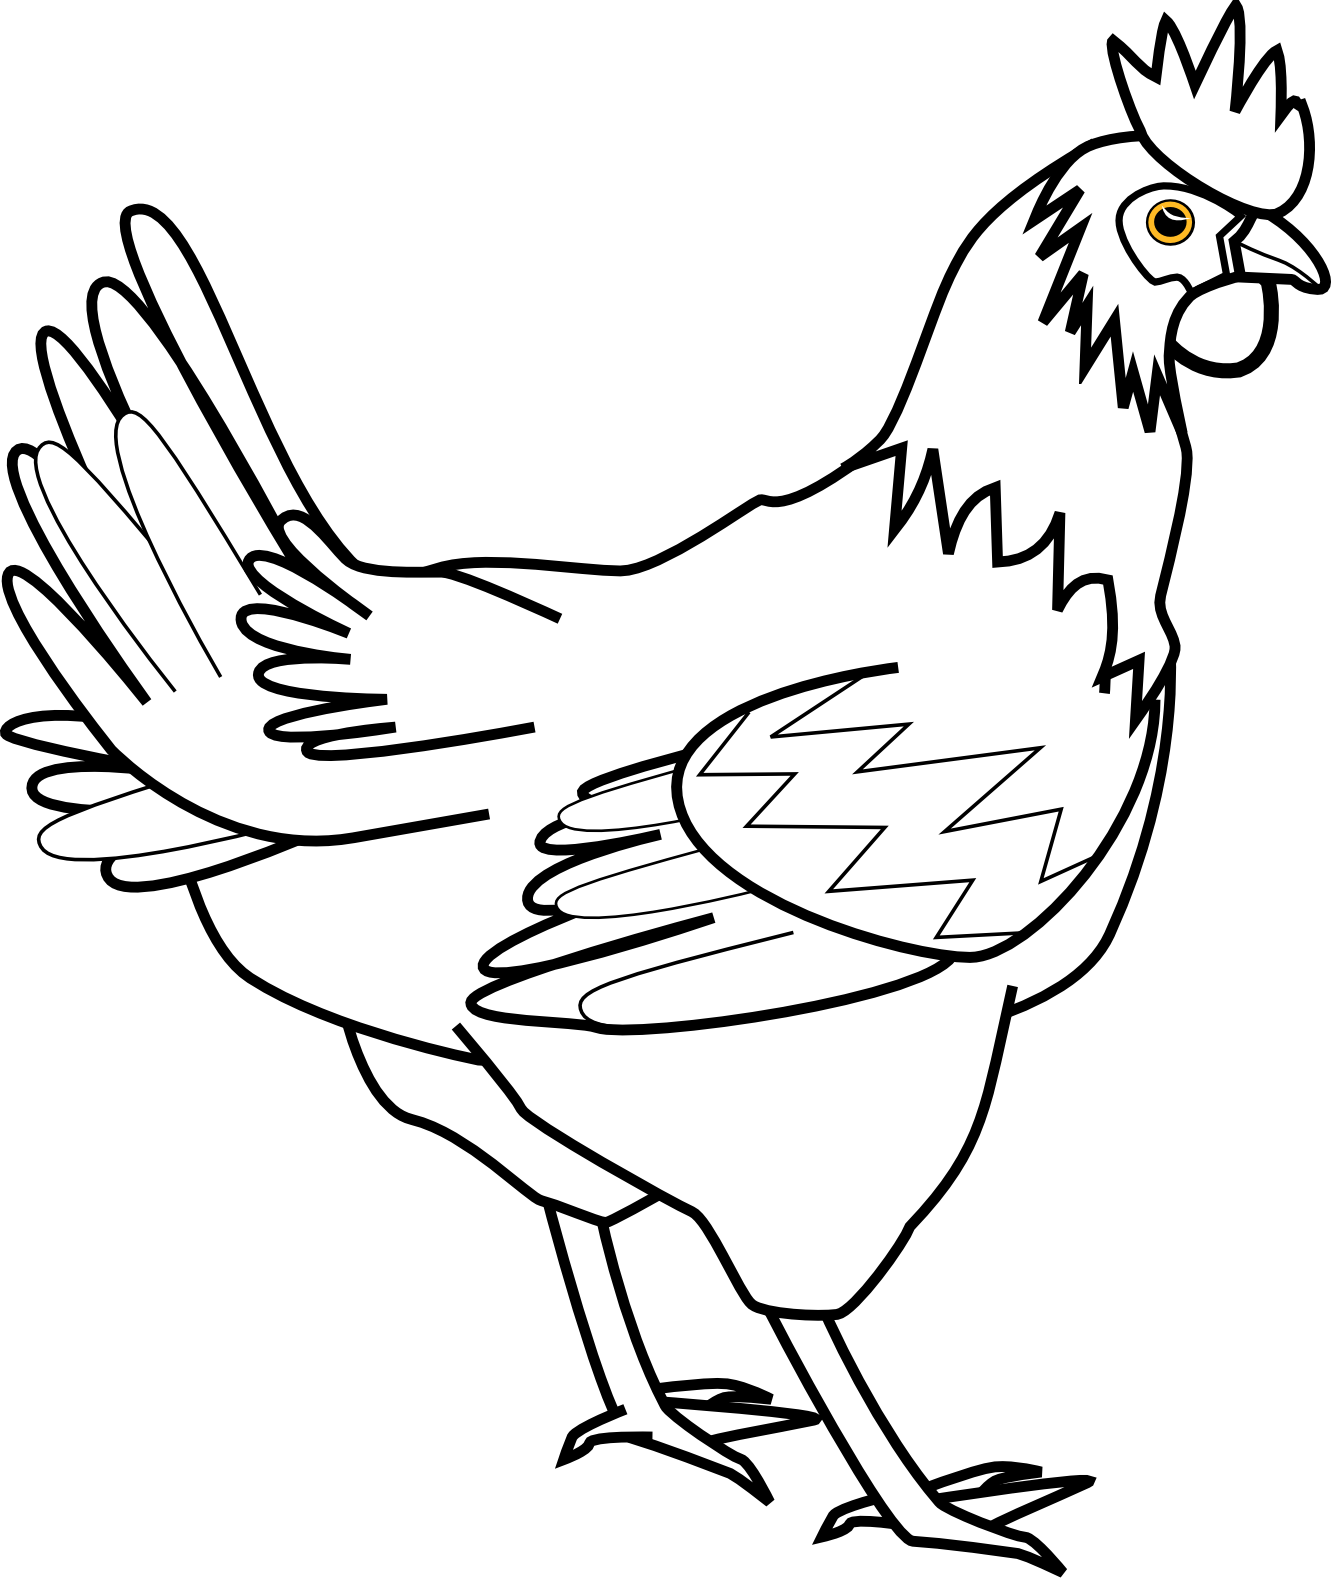 Farm clipart coloring page. Rooster drawing for kids